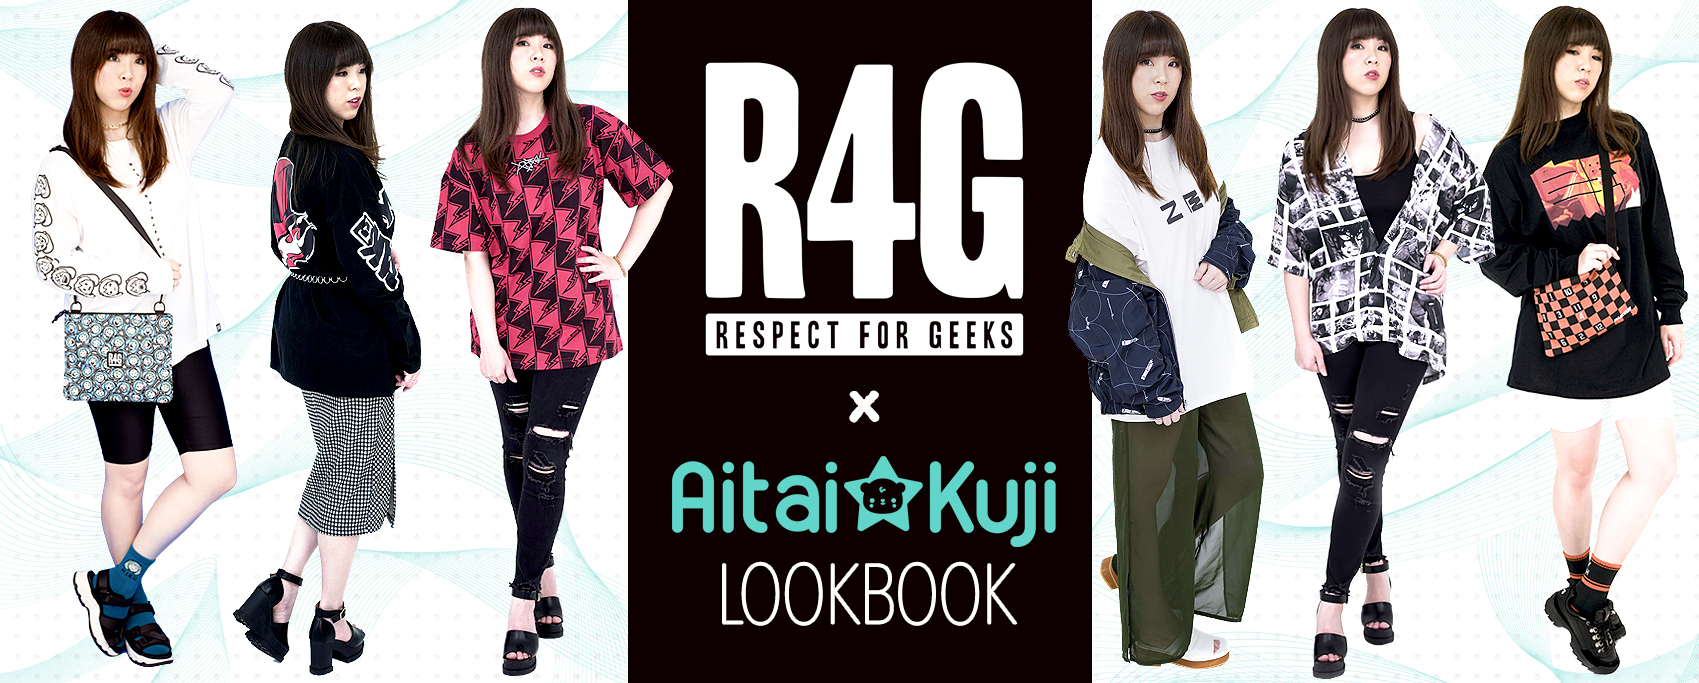 Aitai☆Kuji is proud to partner with R4G (Respect For Geeks) Japanese Anime Fashion Brand! Check out our Lookbook for outfit ideas!